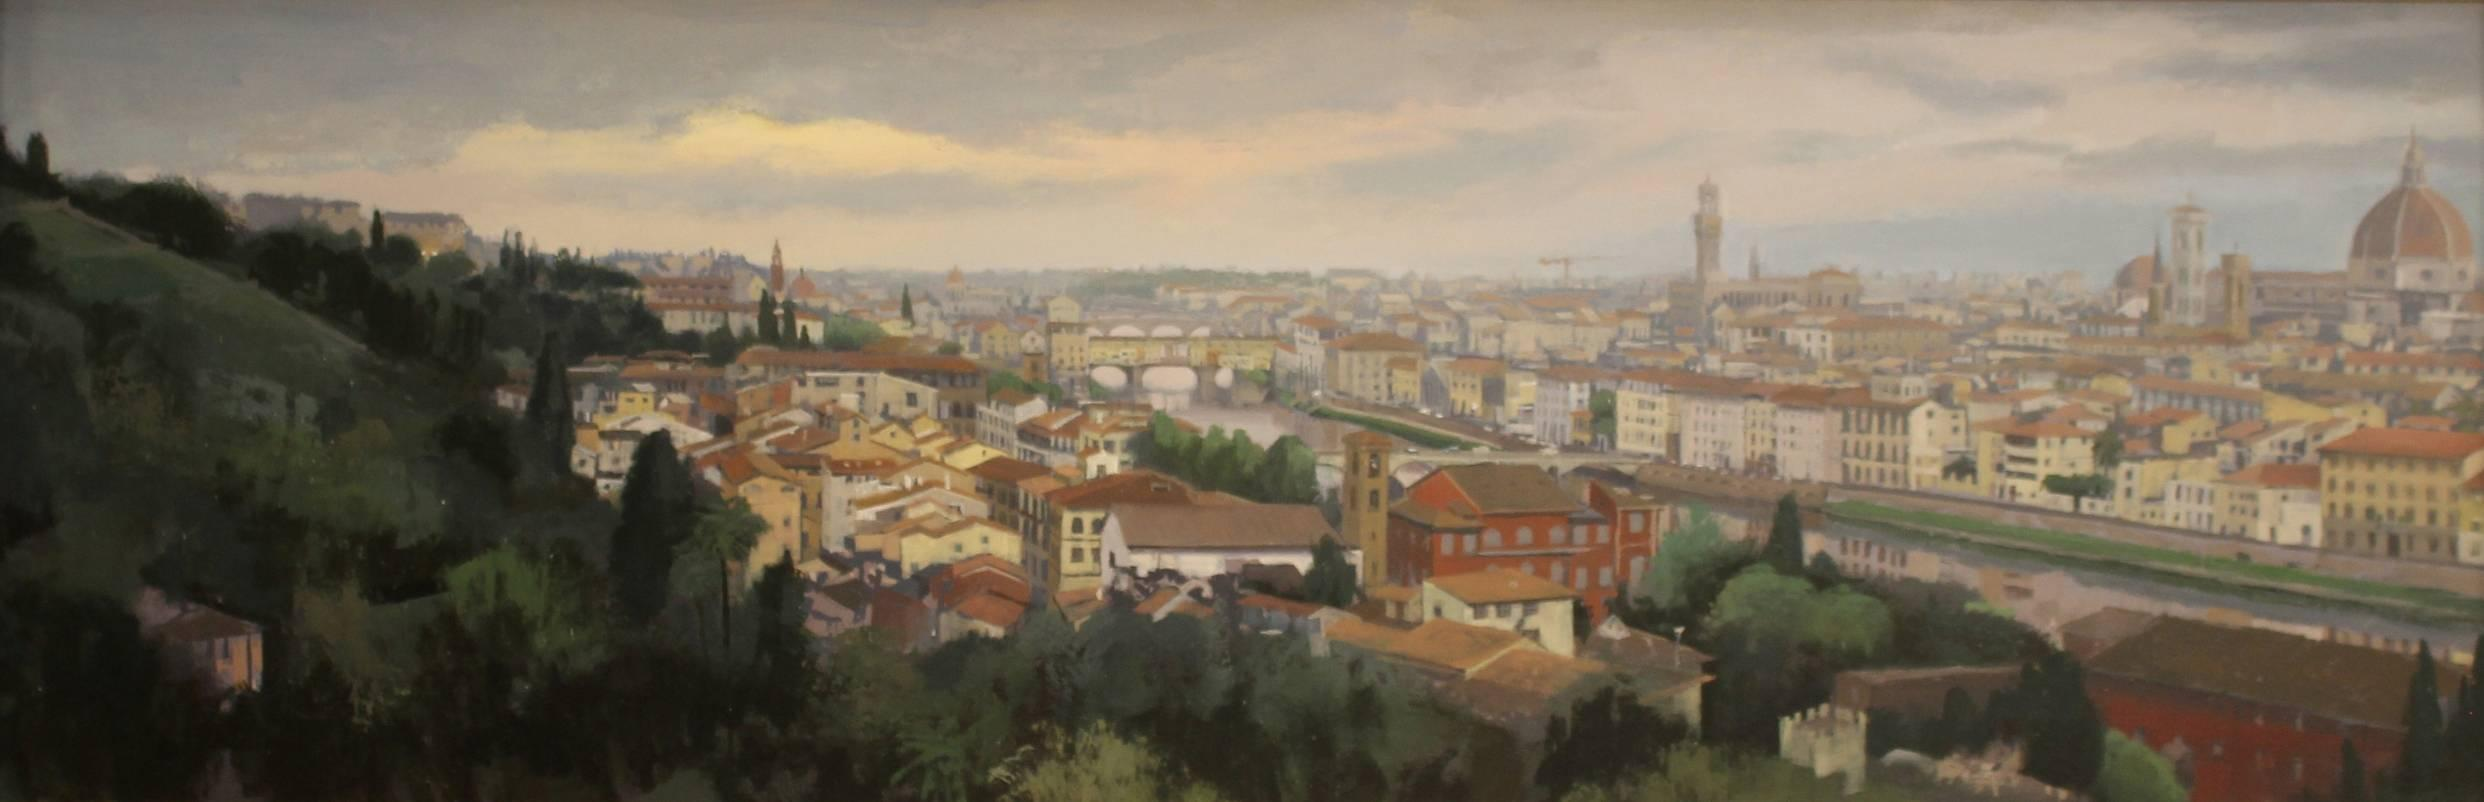 """""""The Arno at Dawn, Florence Italy (view from Piazzale Michalangelo)"""